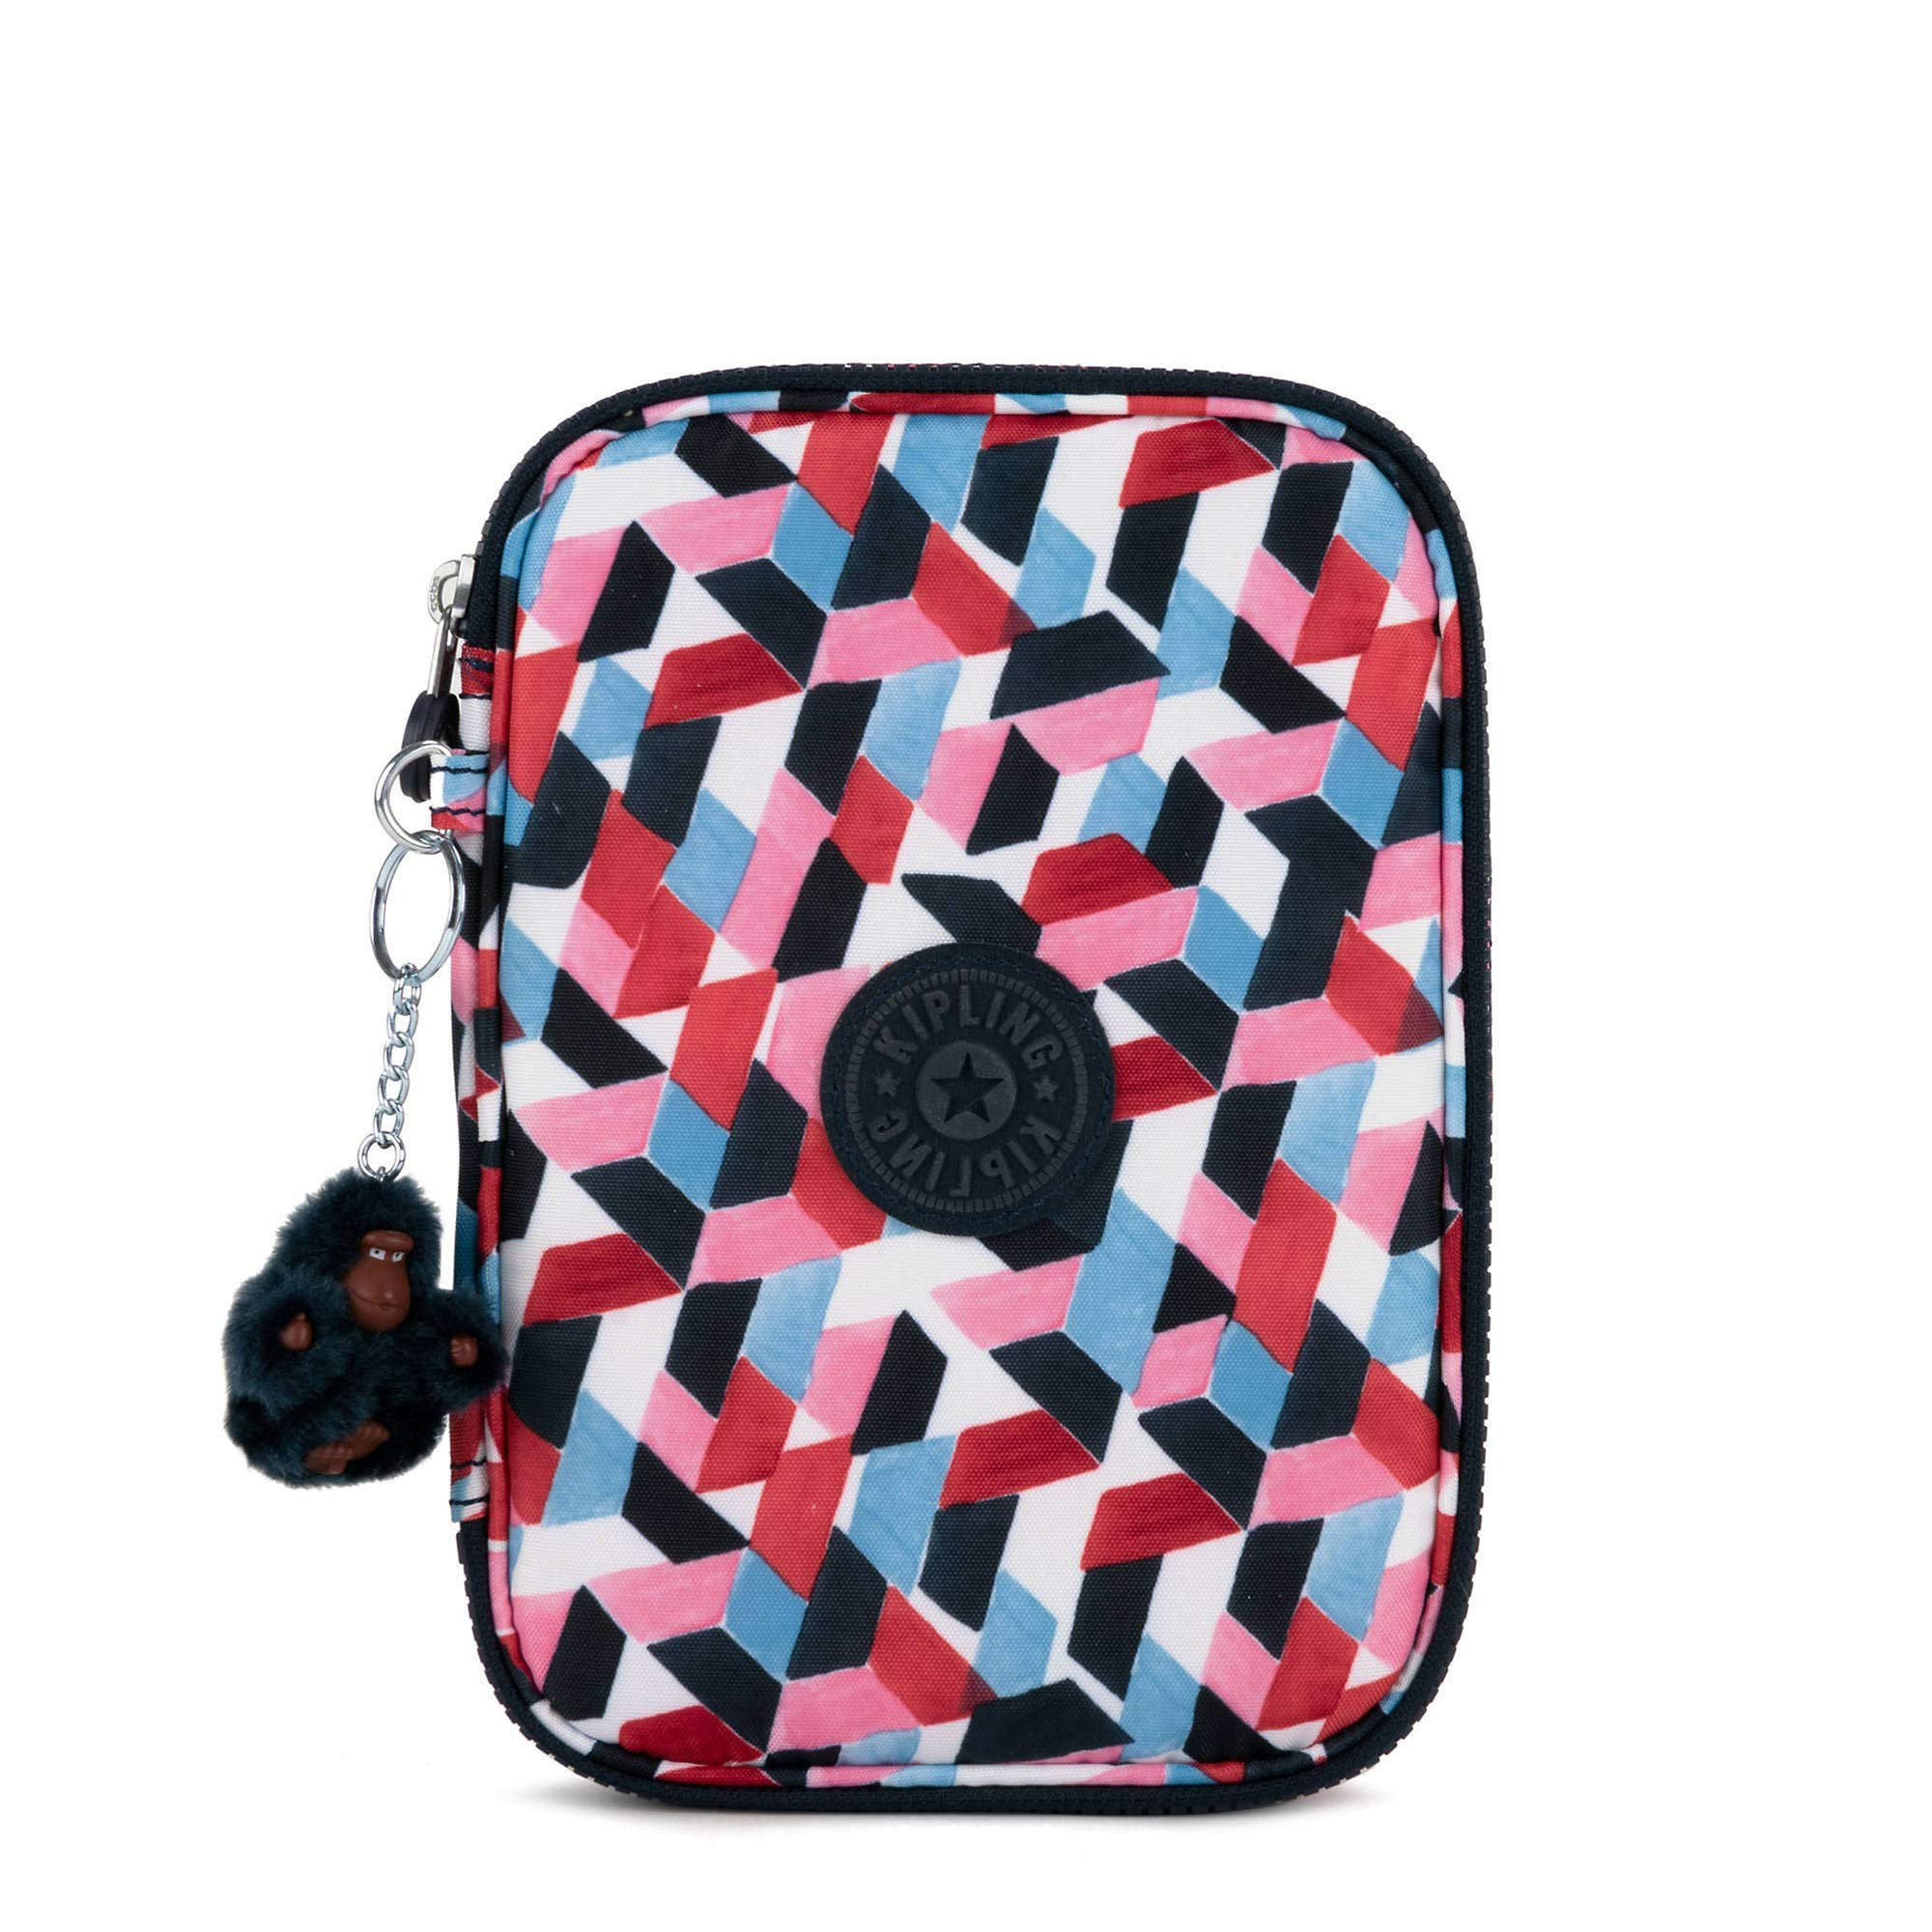 Amazon.com: Kipling 100 Pens Printed Case Forever Tiles 1: Shoes